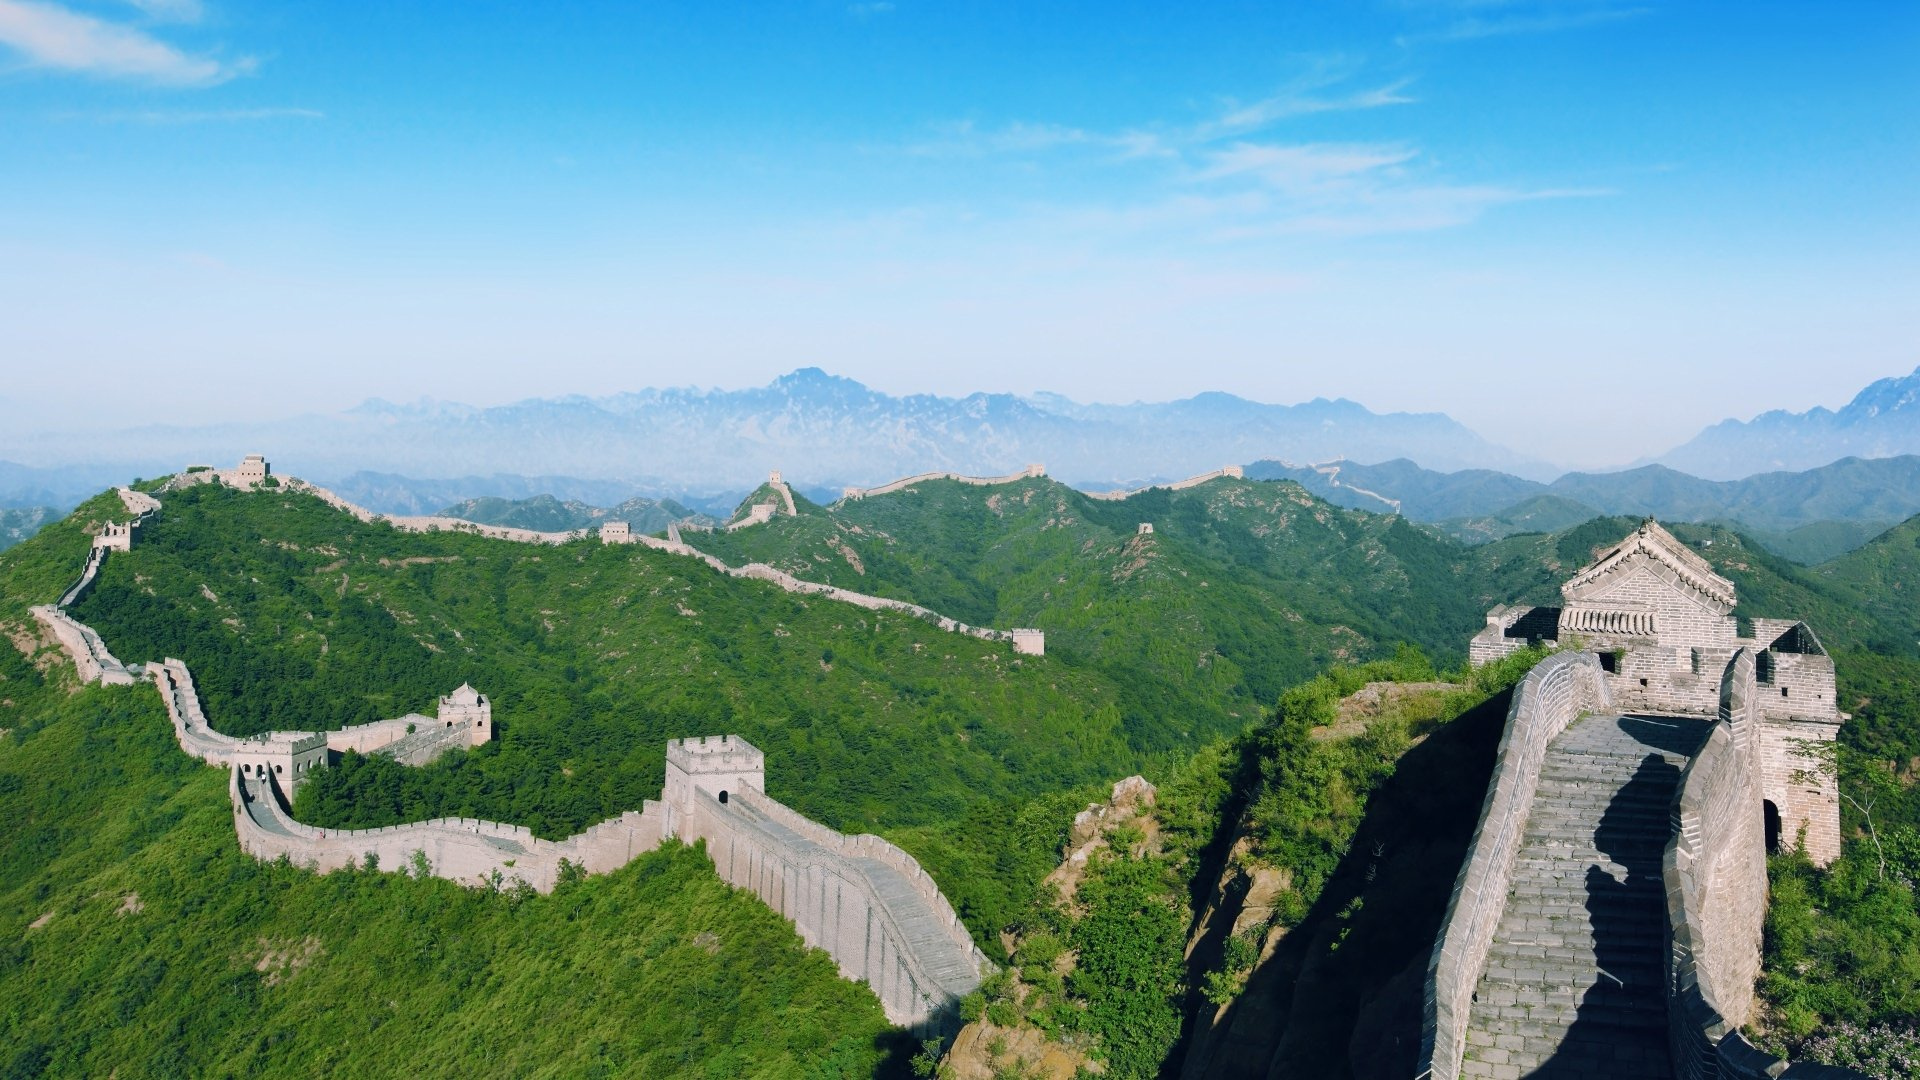 56 Great Wall of China HD Wallpapers Background Images 1920x1080